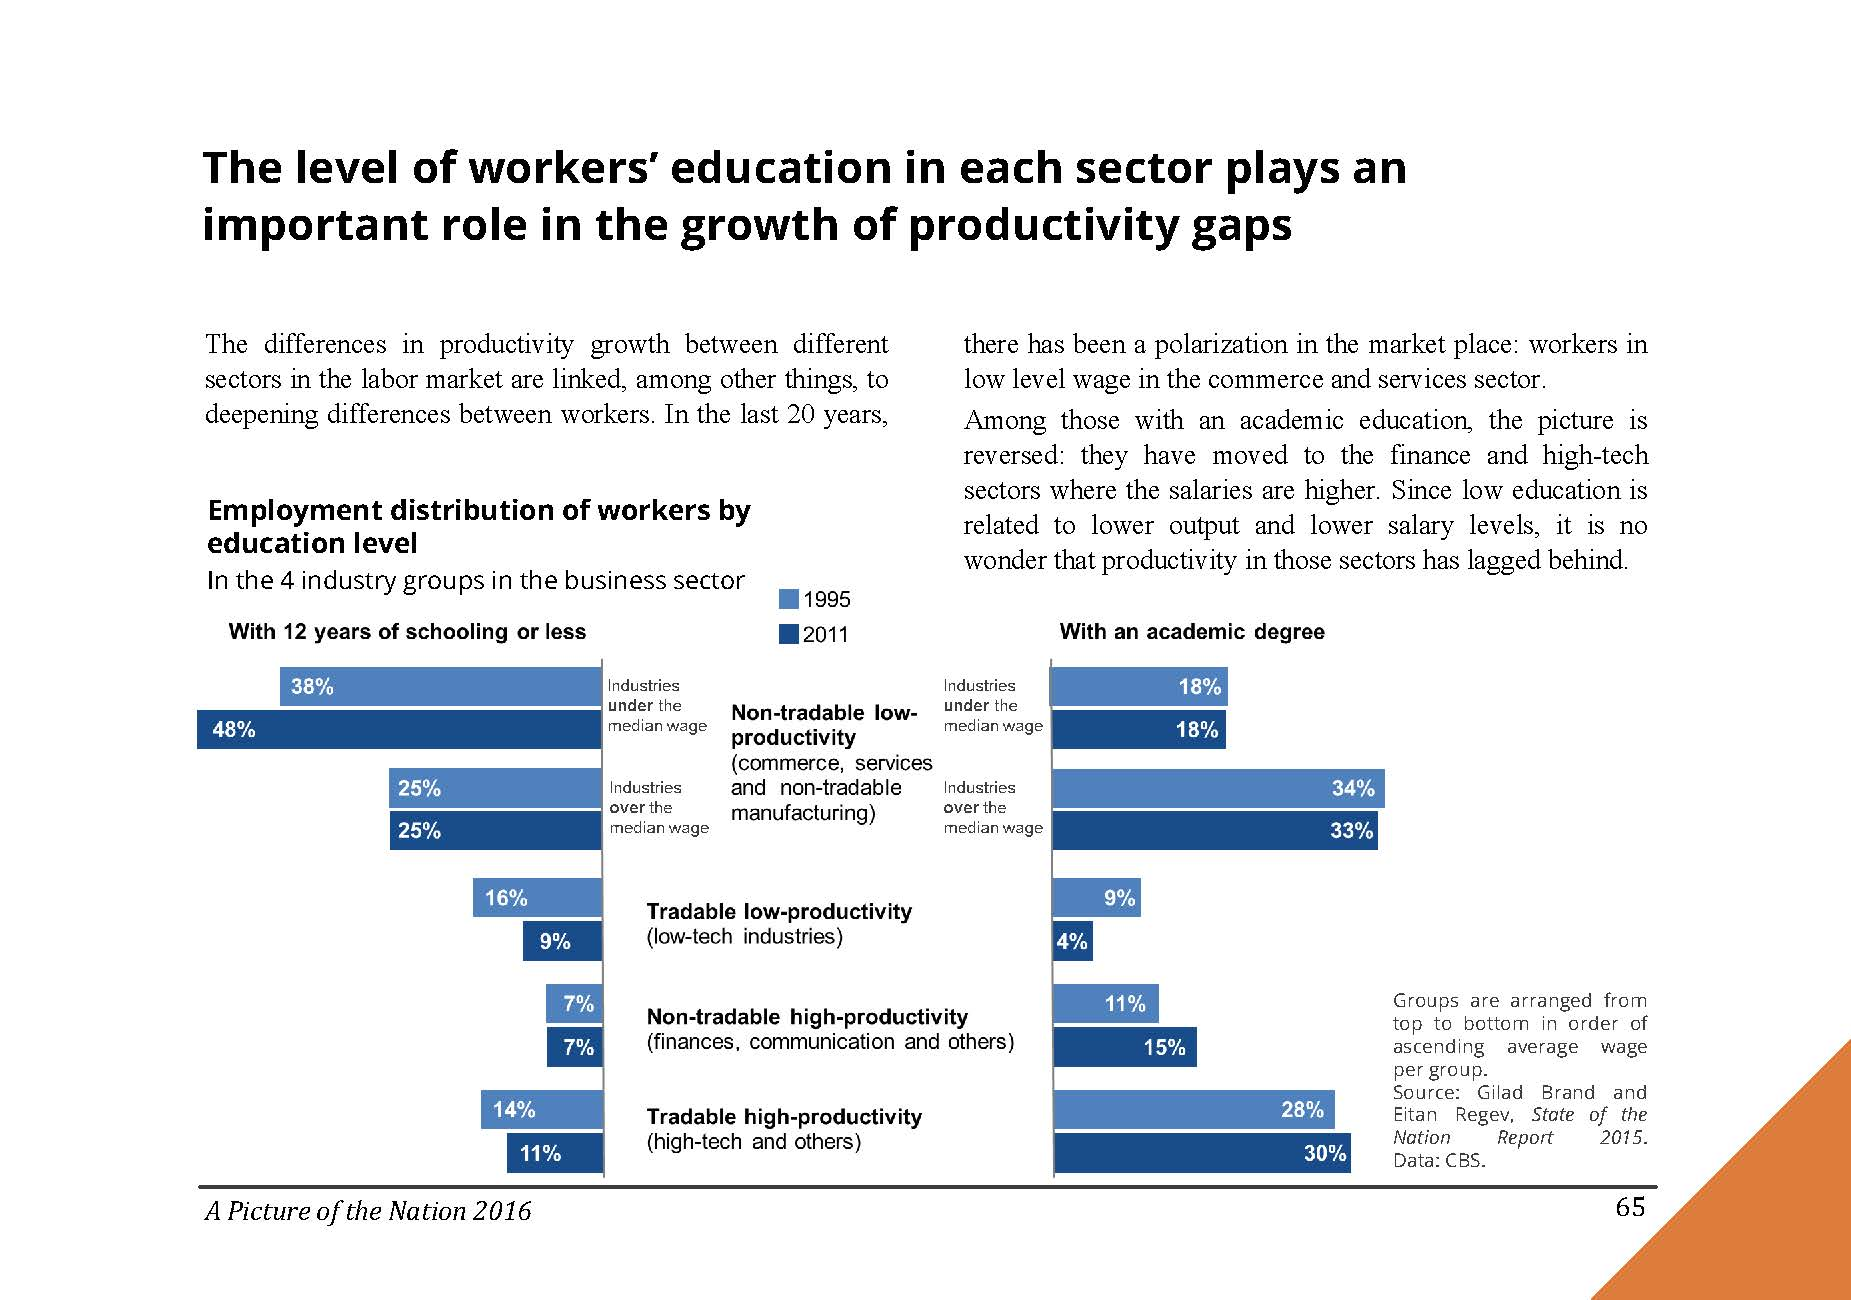 The level of workers' education in each sector plays an important role in the growth of productivity gaps in Israel